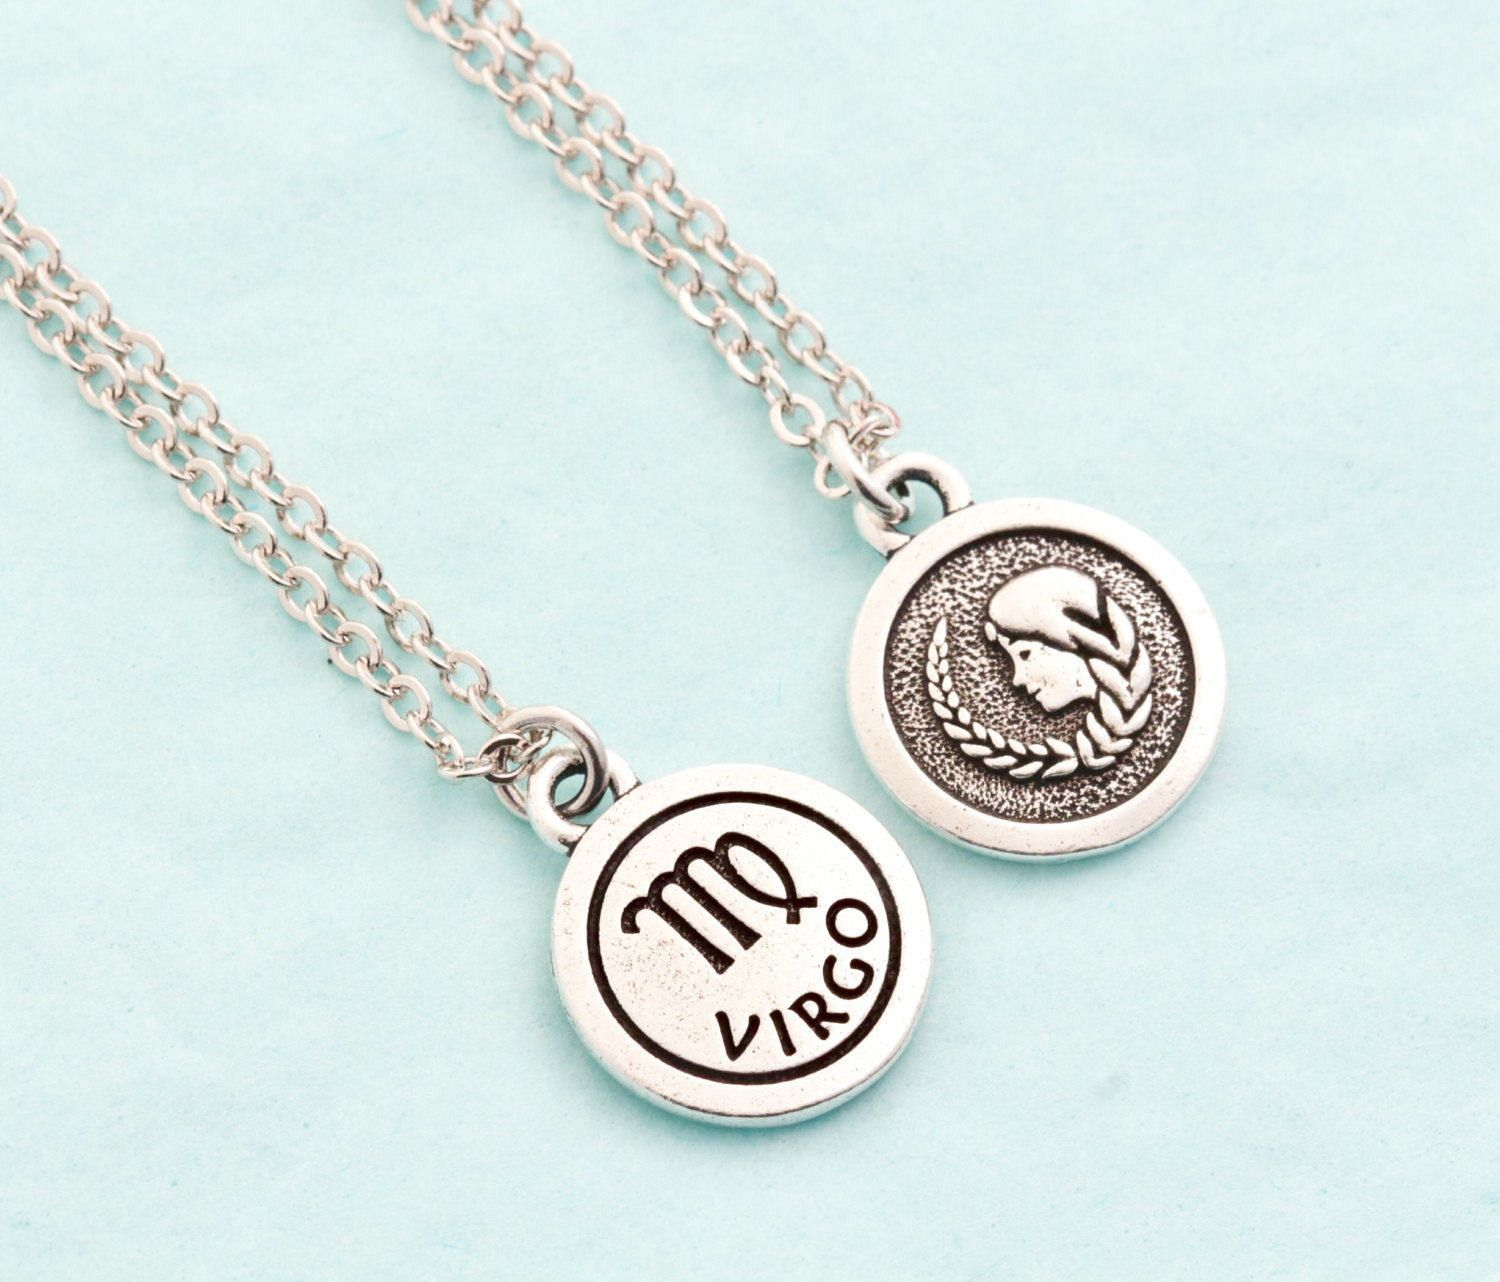 dipped zodiac gold signs products virgo constellation aries necklace copy through all pisces of silver pendant plated